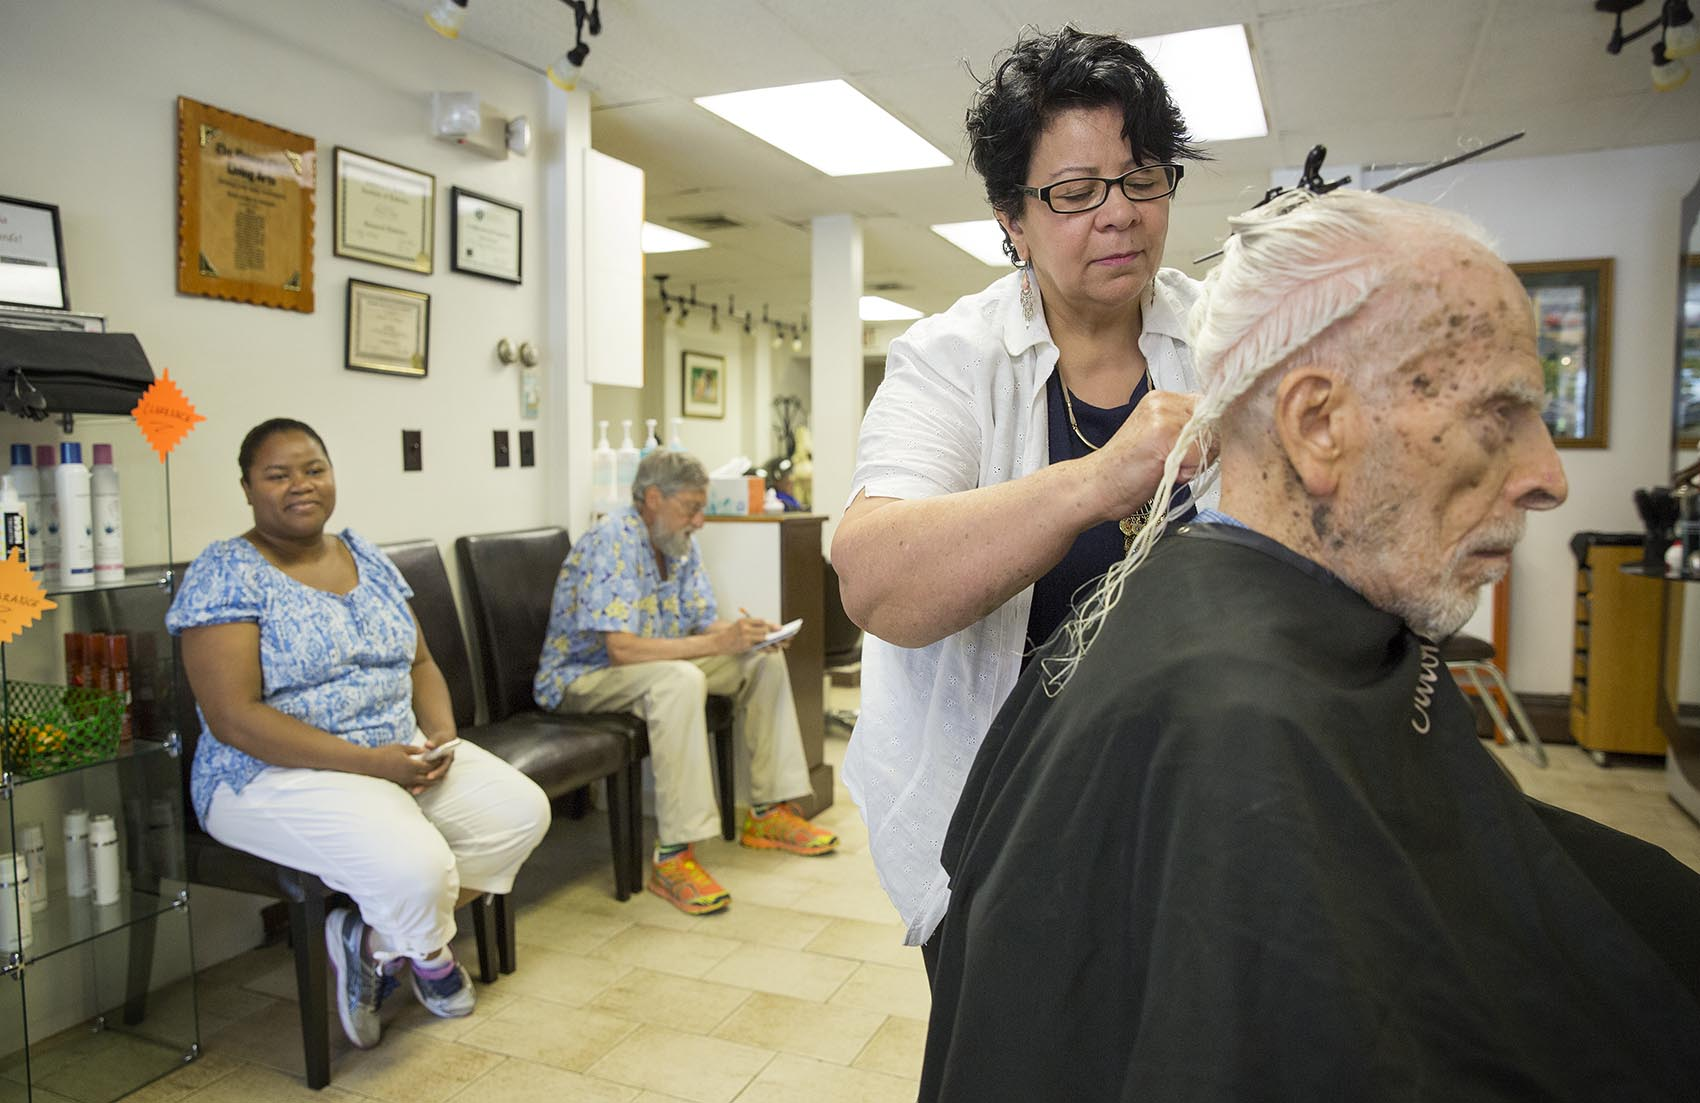 Demand For Senior Home Care Grows But Its Pay Remains Low Bostonomix